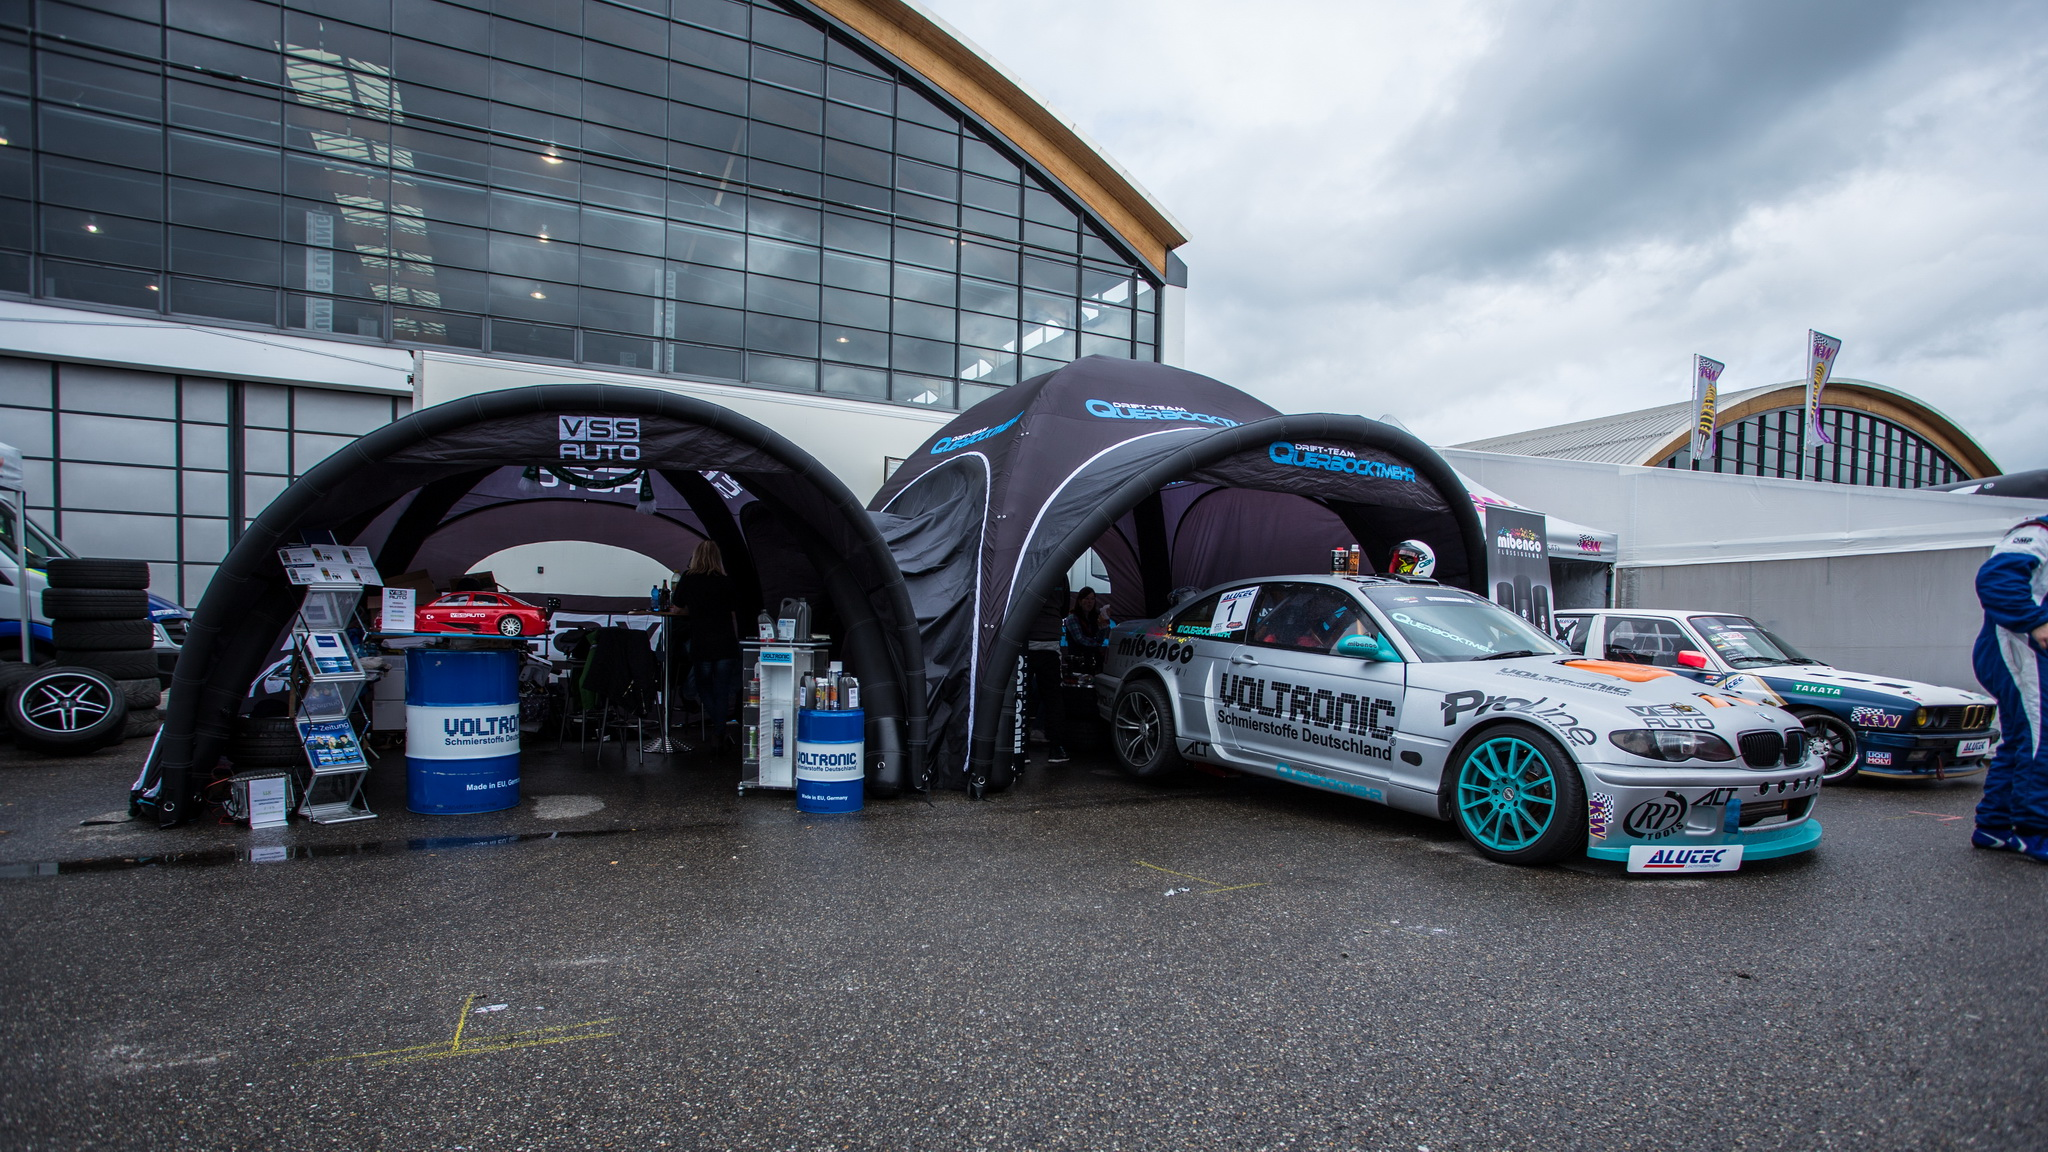 voltronic-tuning-world-bodensee-2015